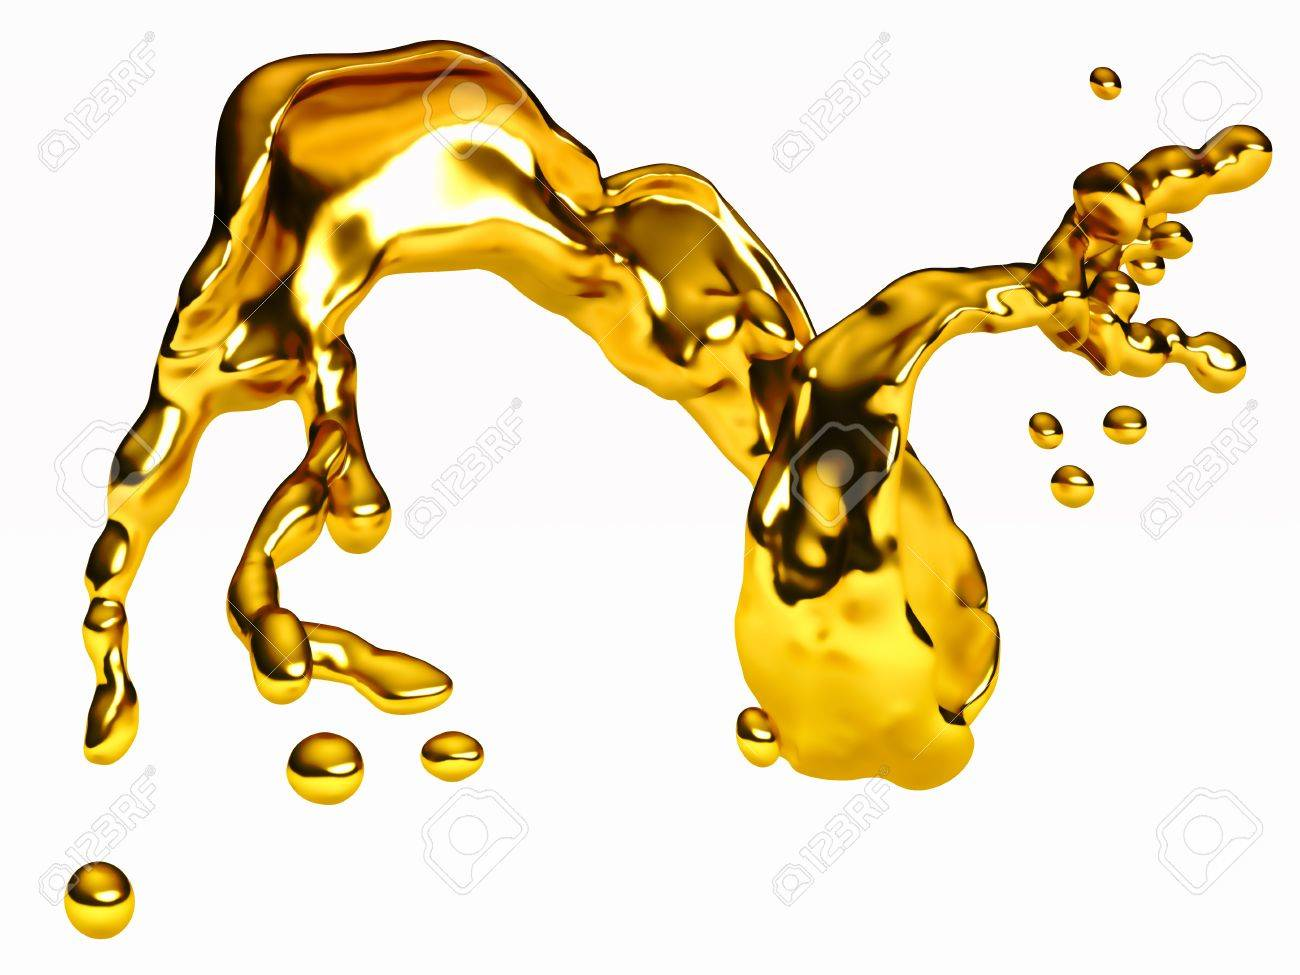 Splash of golden fluid with droplets over white. Large resolution Stock Photo - 9851942